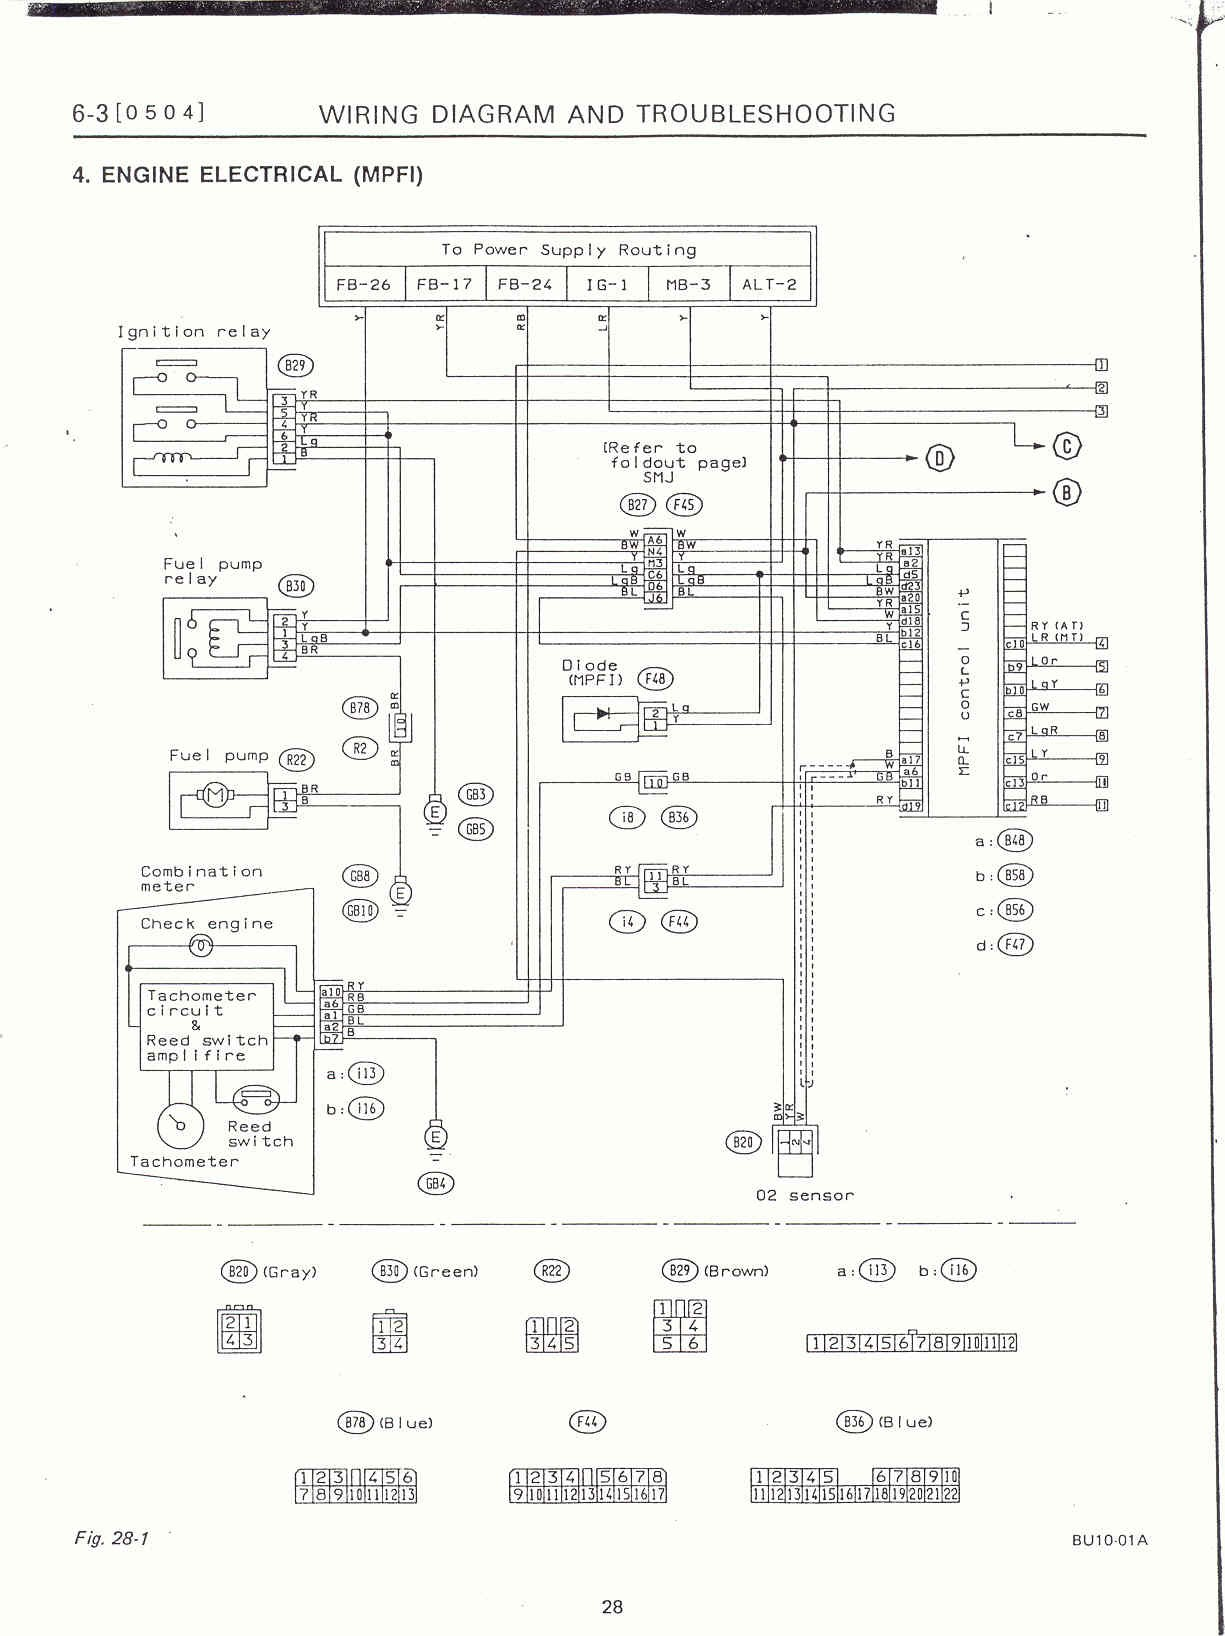 XS_6780] Subaru Impreza Fuel Pump Location 1989 Subaru Gl Wiring Diagram  Subaru Schematic Wiring